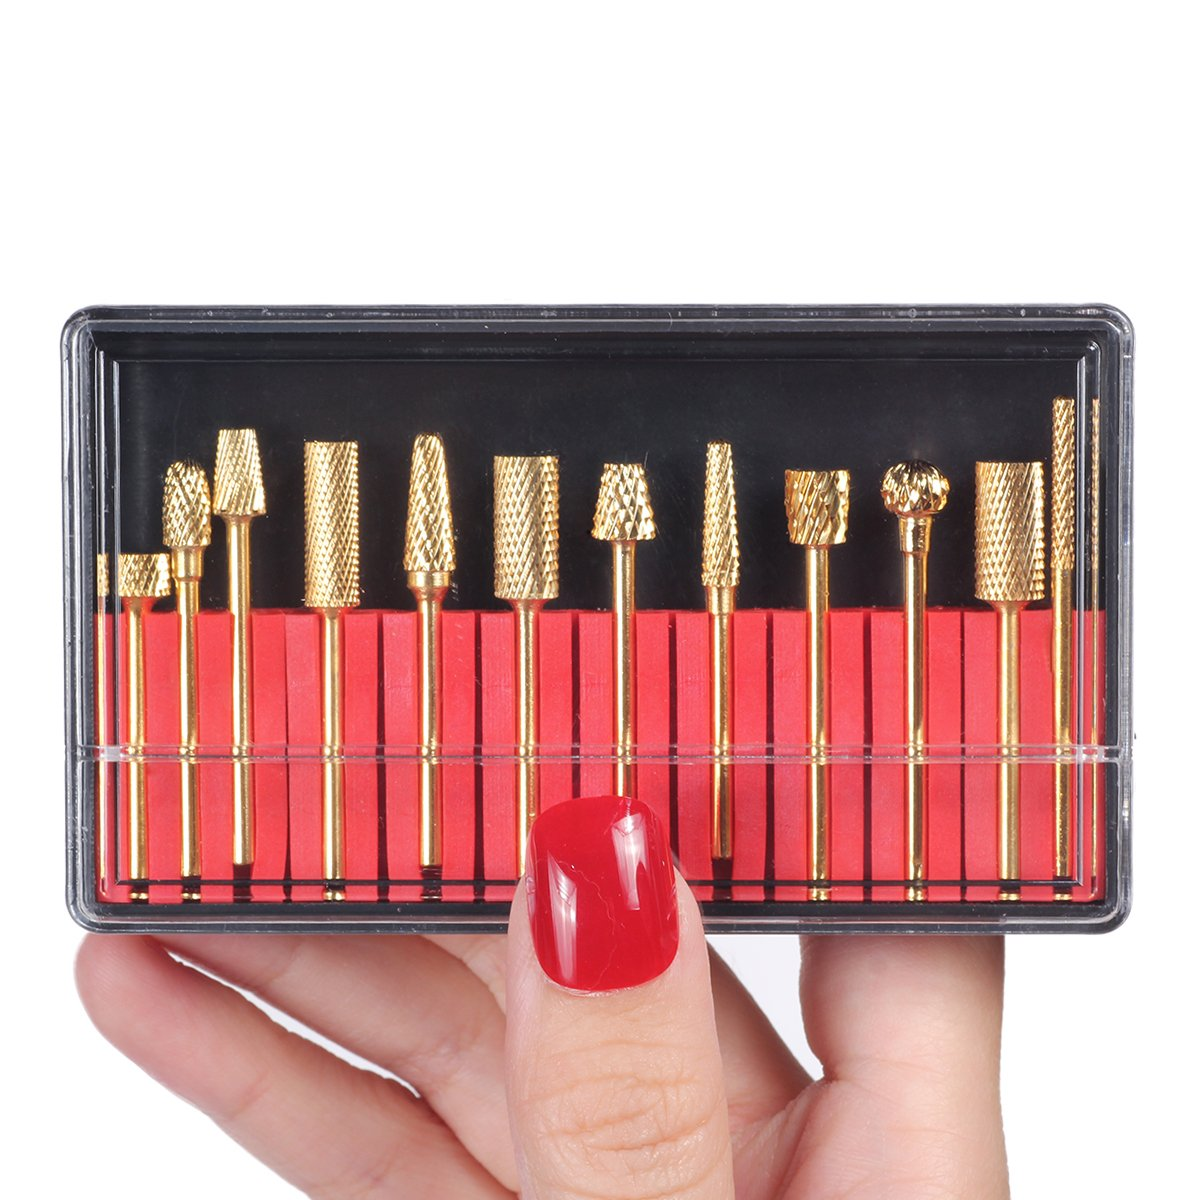 Amazon.com: MAKARTT 12Pcs Gold Carbide Nail Drill Bit Set ...